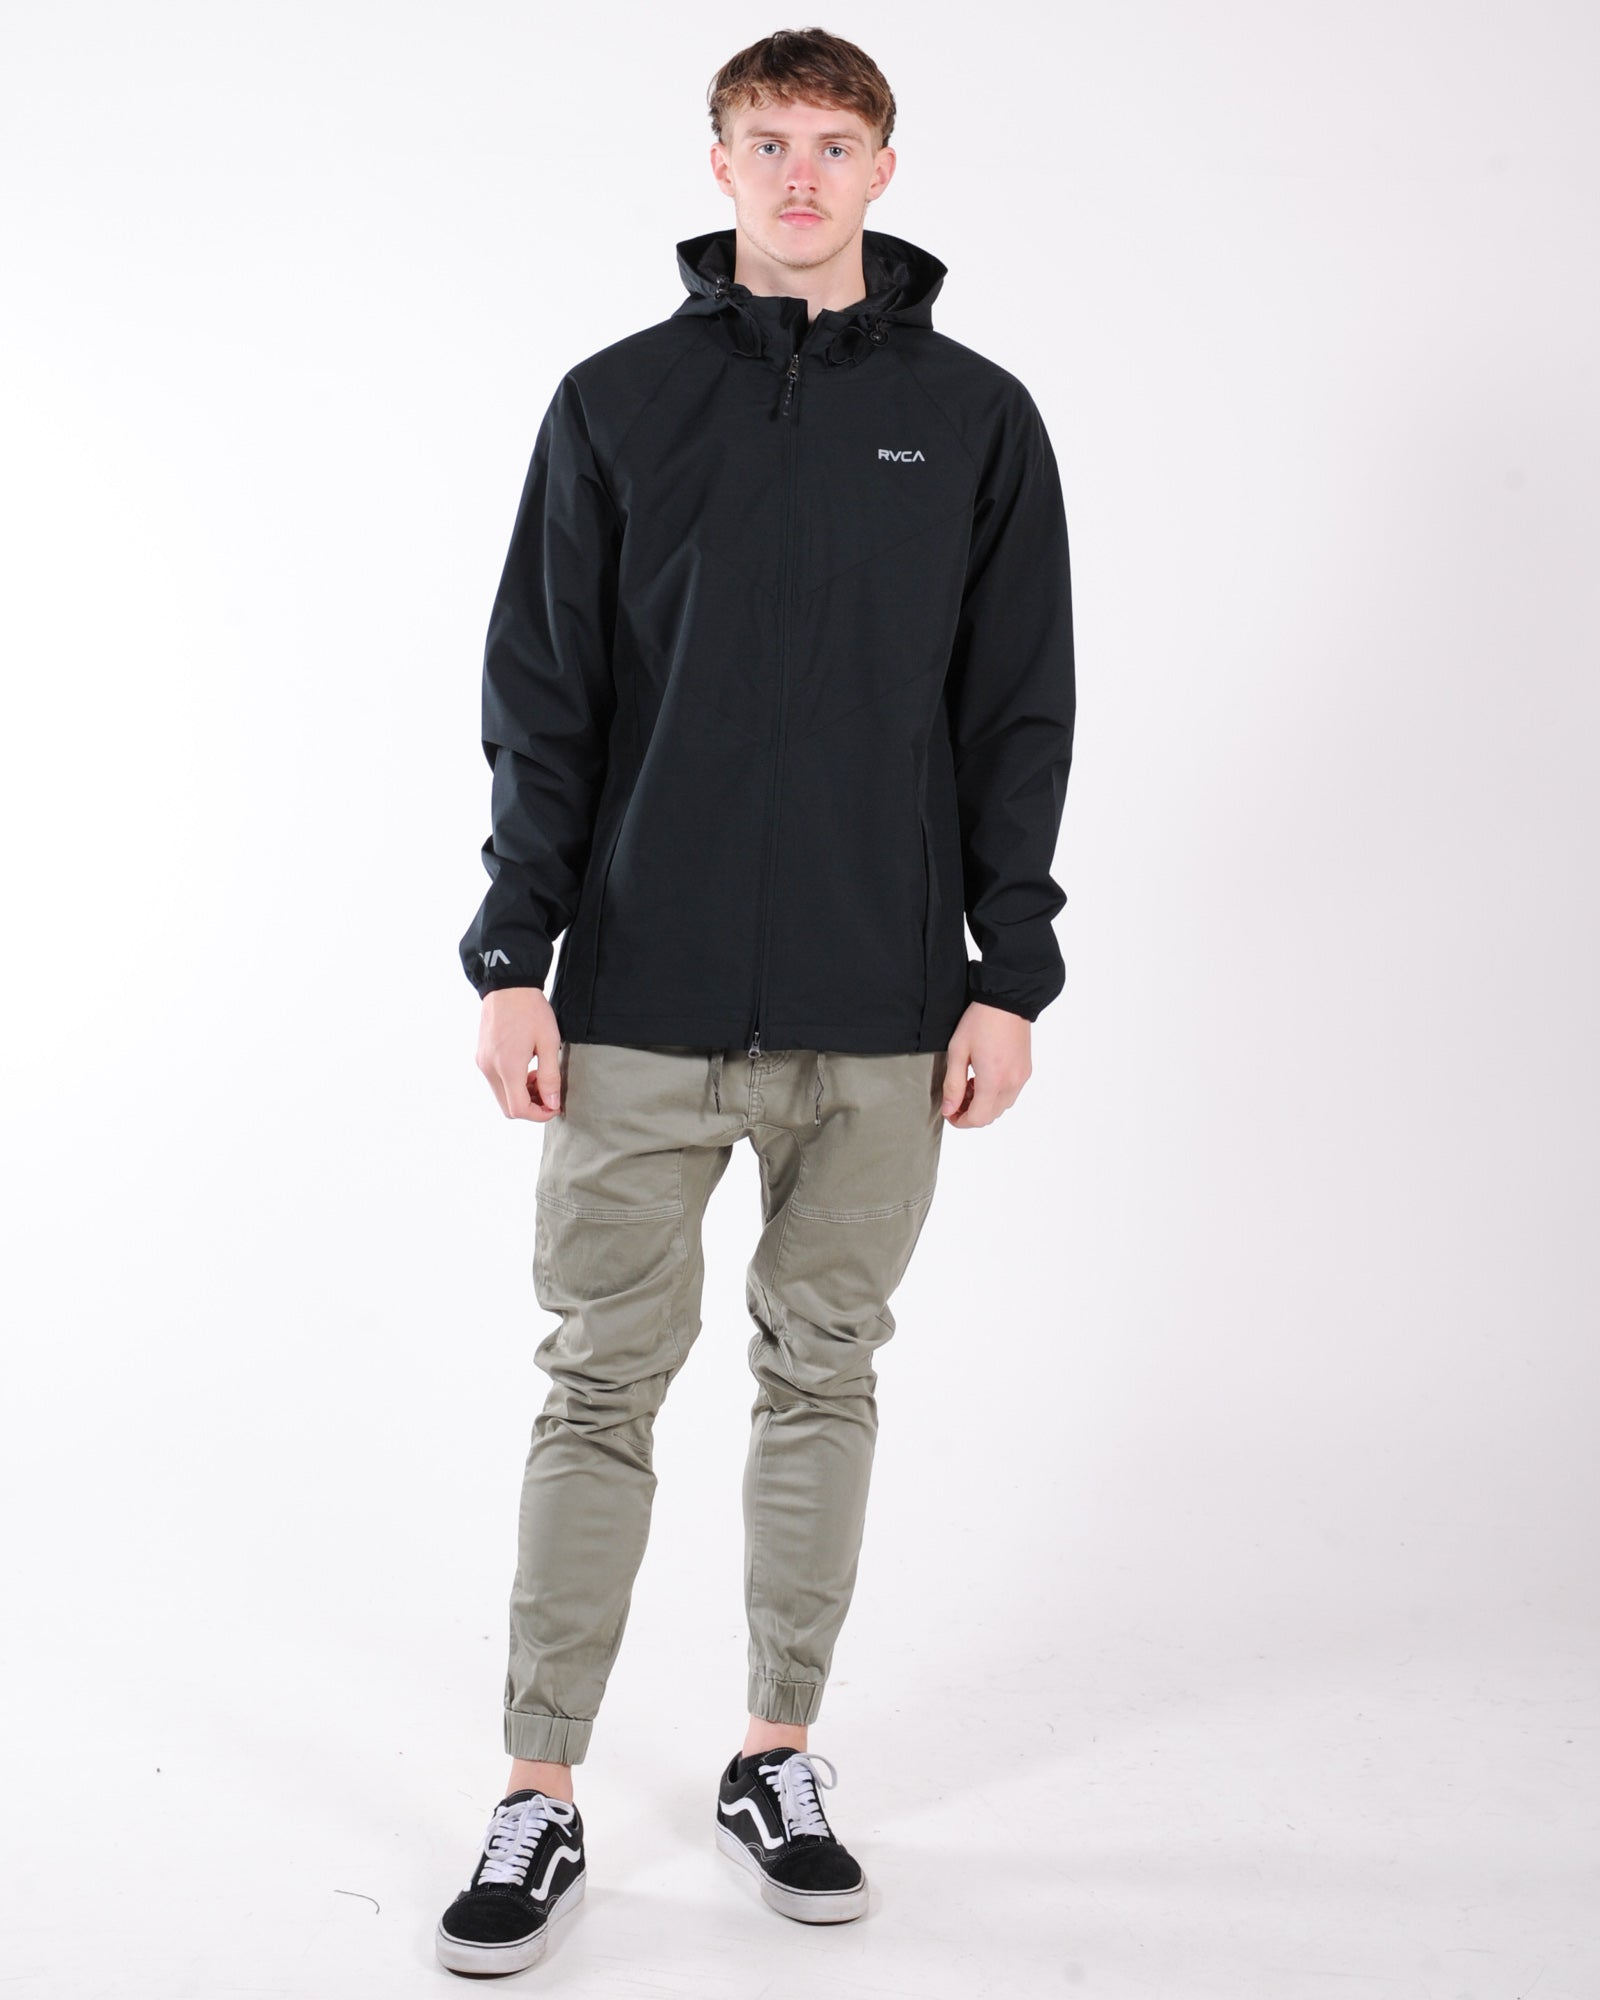 Rvca Va Windbreaker Jacket - Black